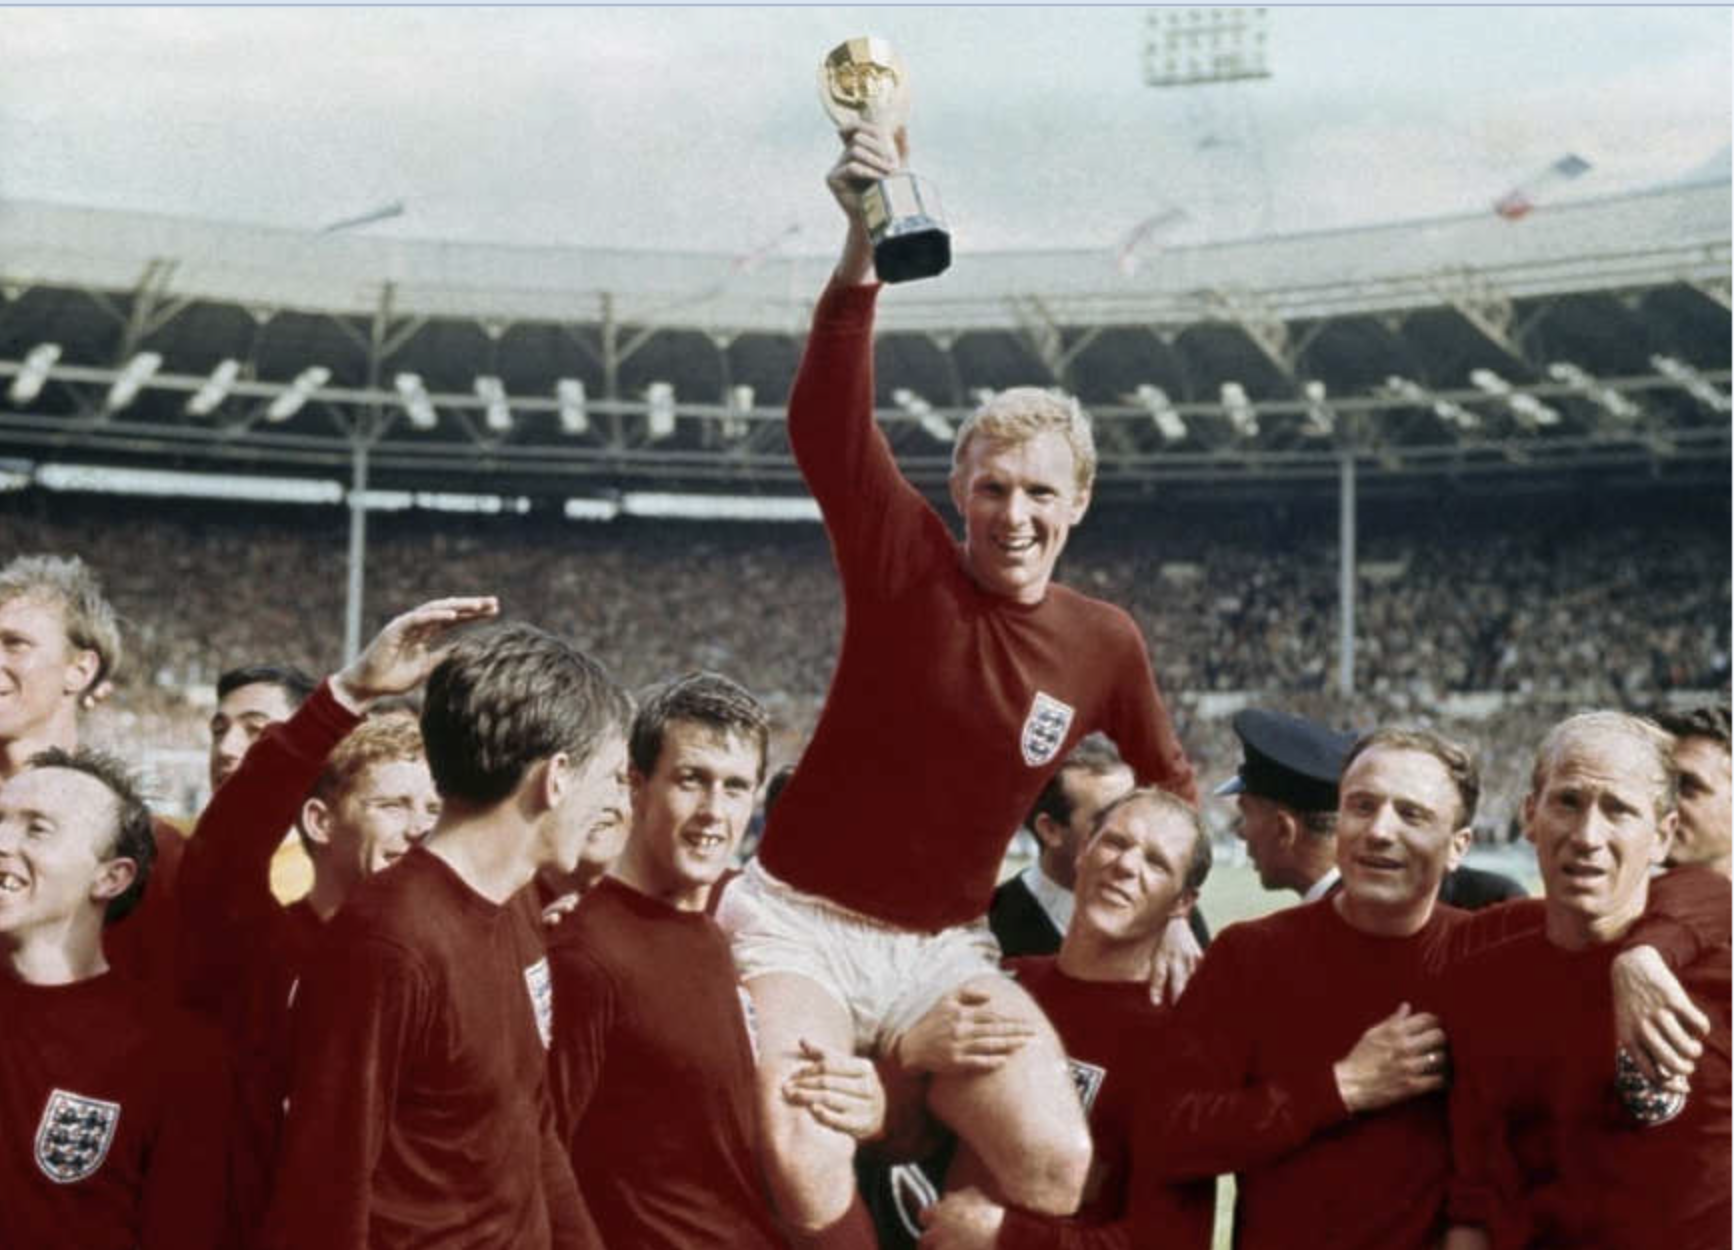 Bobby Moore and his England teammates celebrate winning the 1966 World Cup.